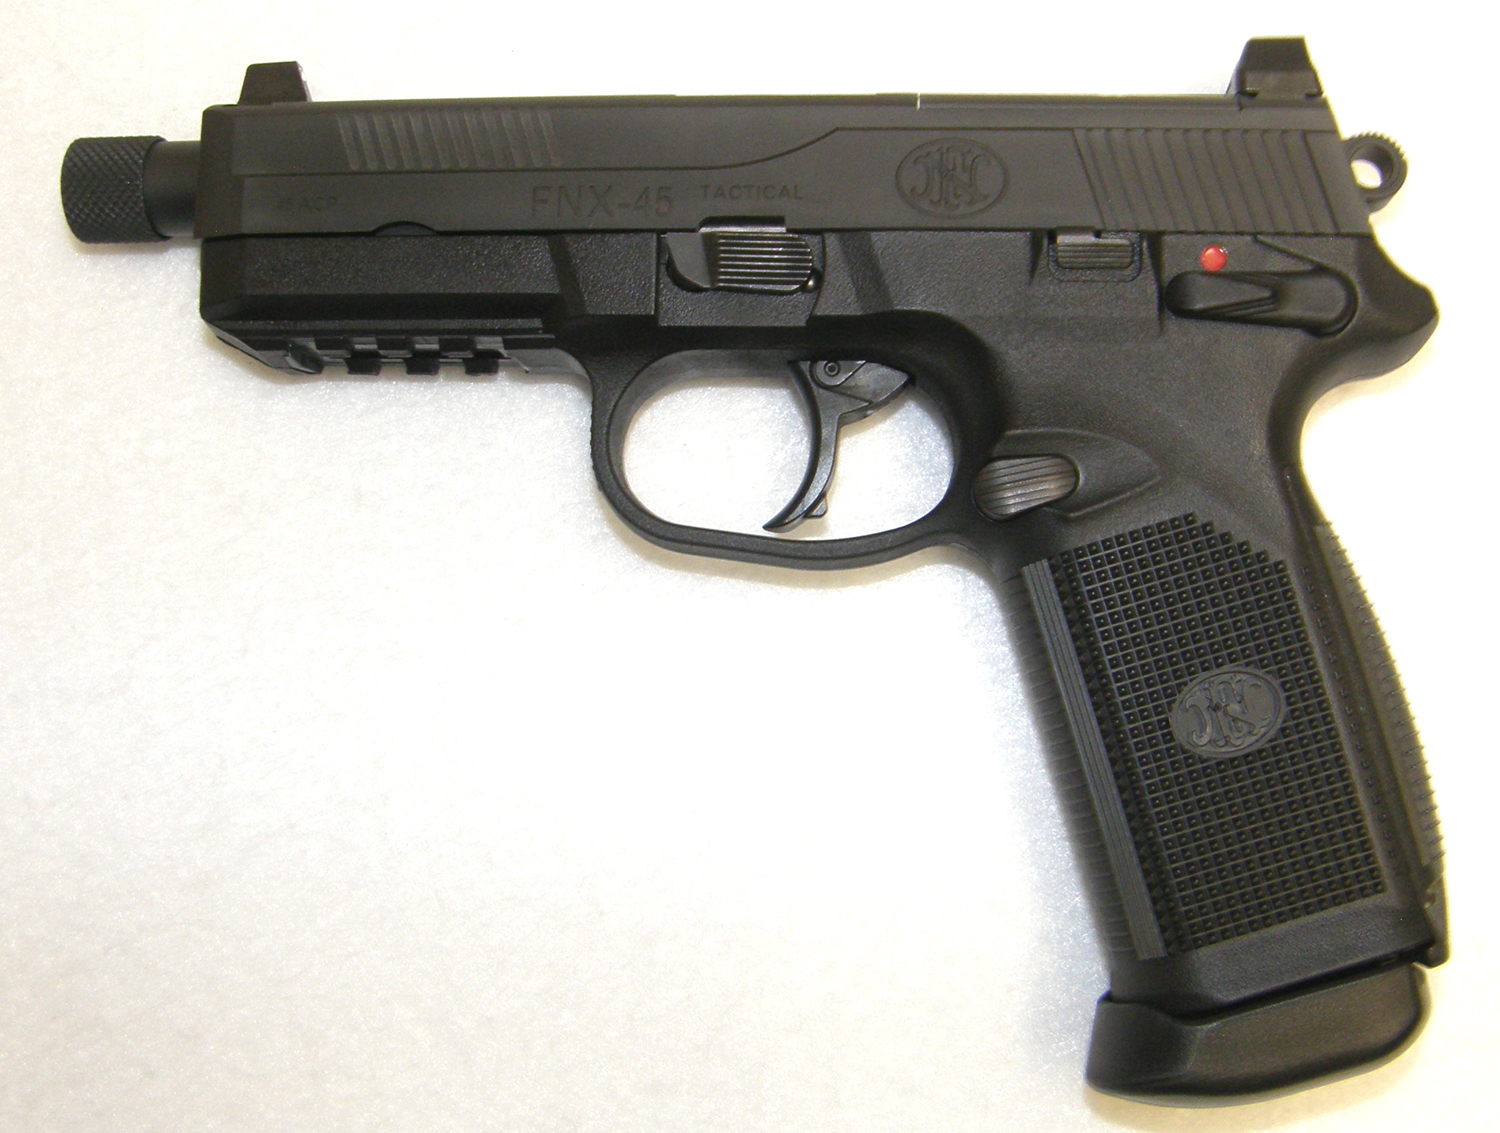 Fnh usa fnx 45 tactical threaded barrel pistol with night sights used